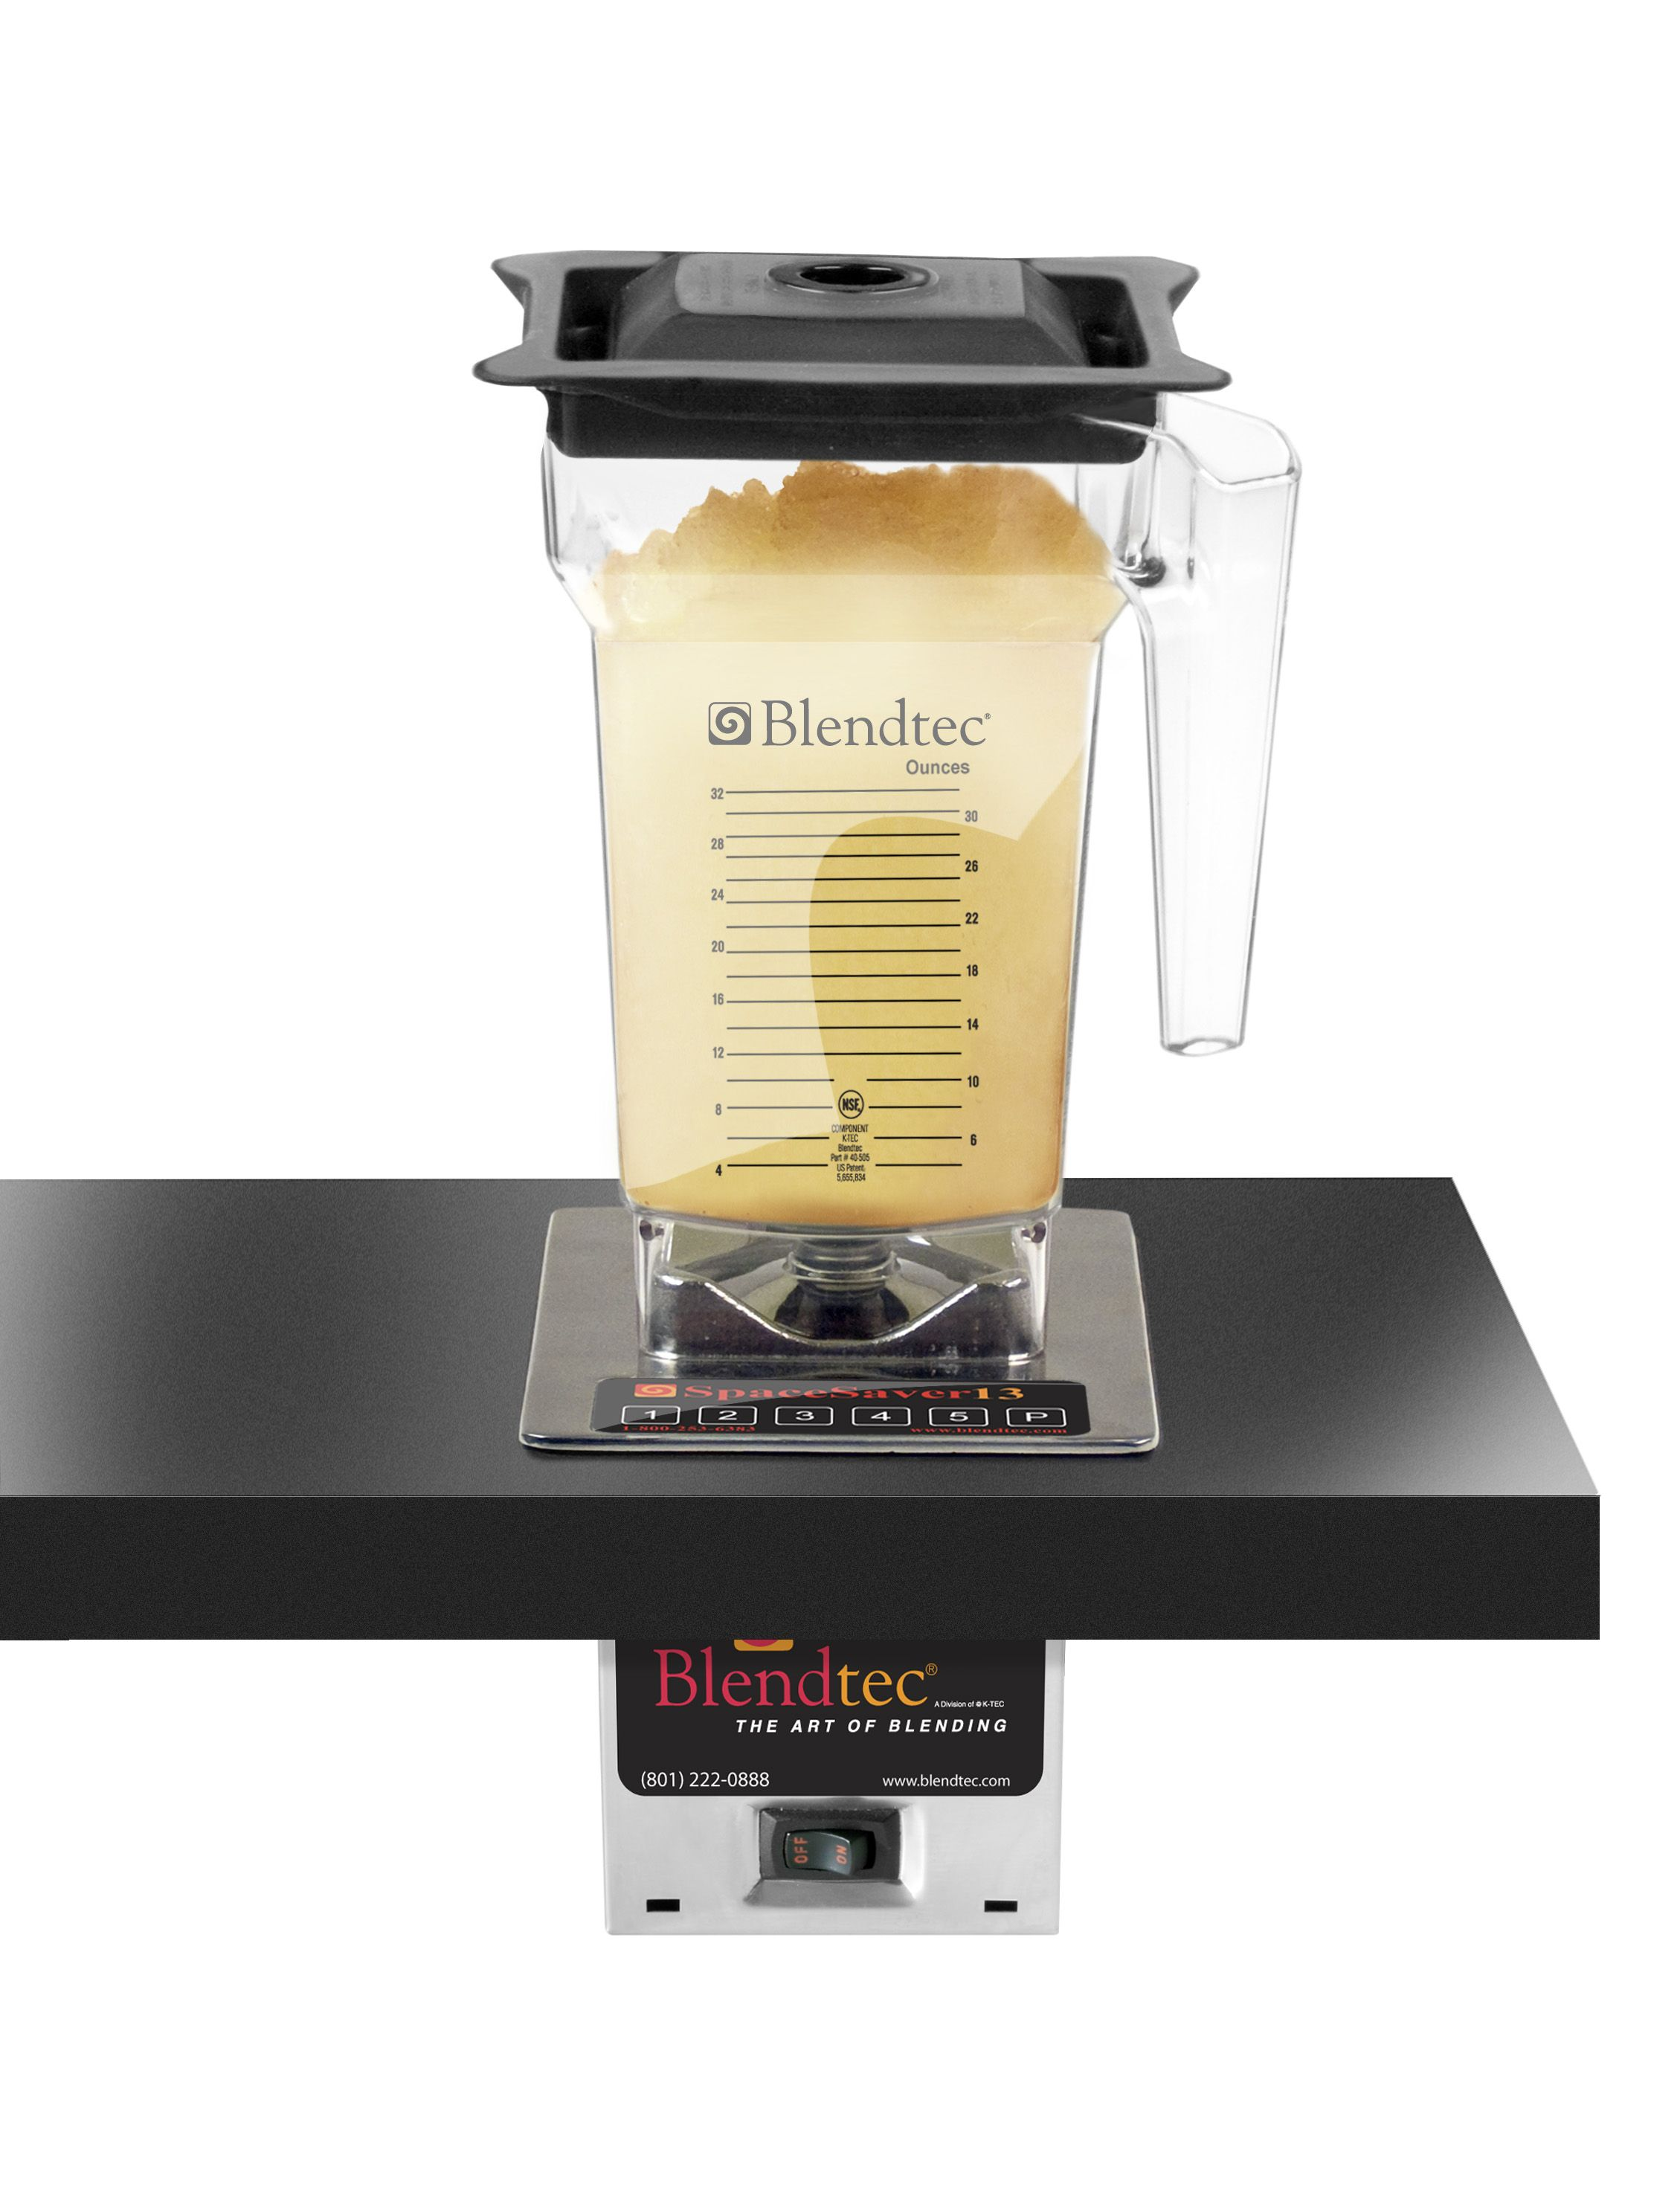 Mount the blend tec blender in the counter top. | House Projects ...